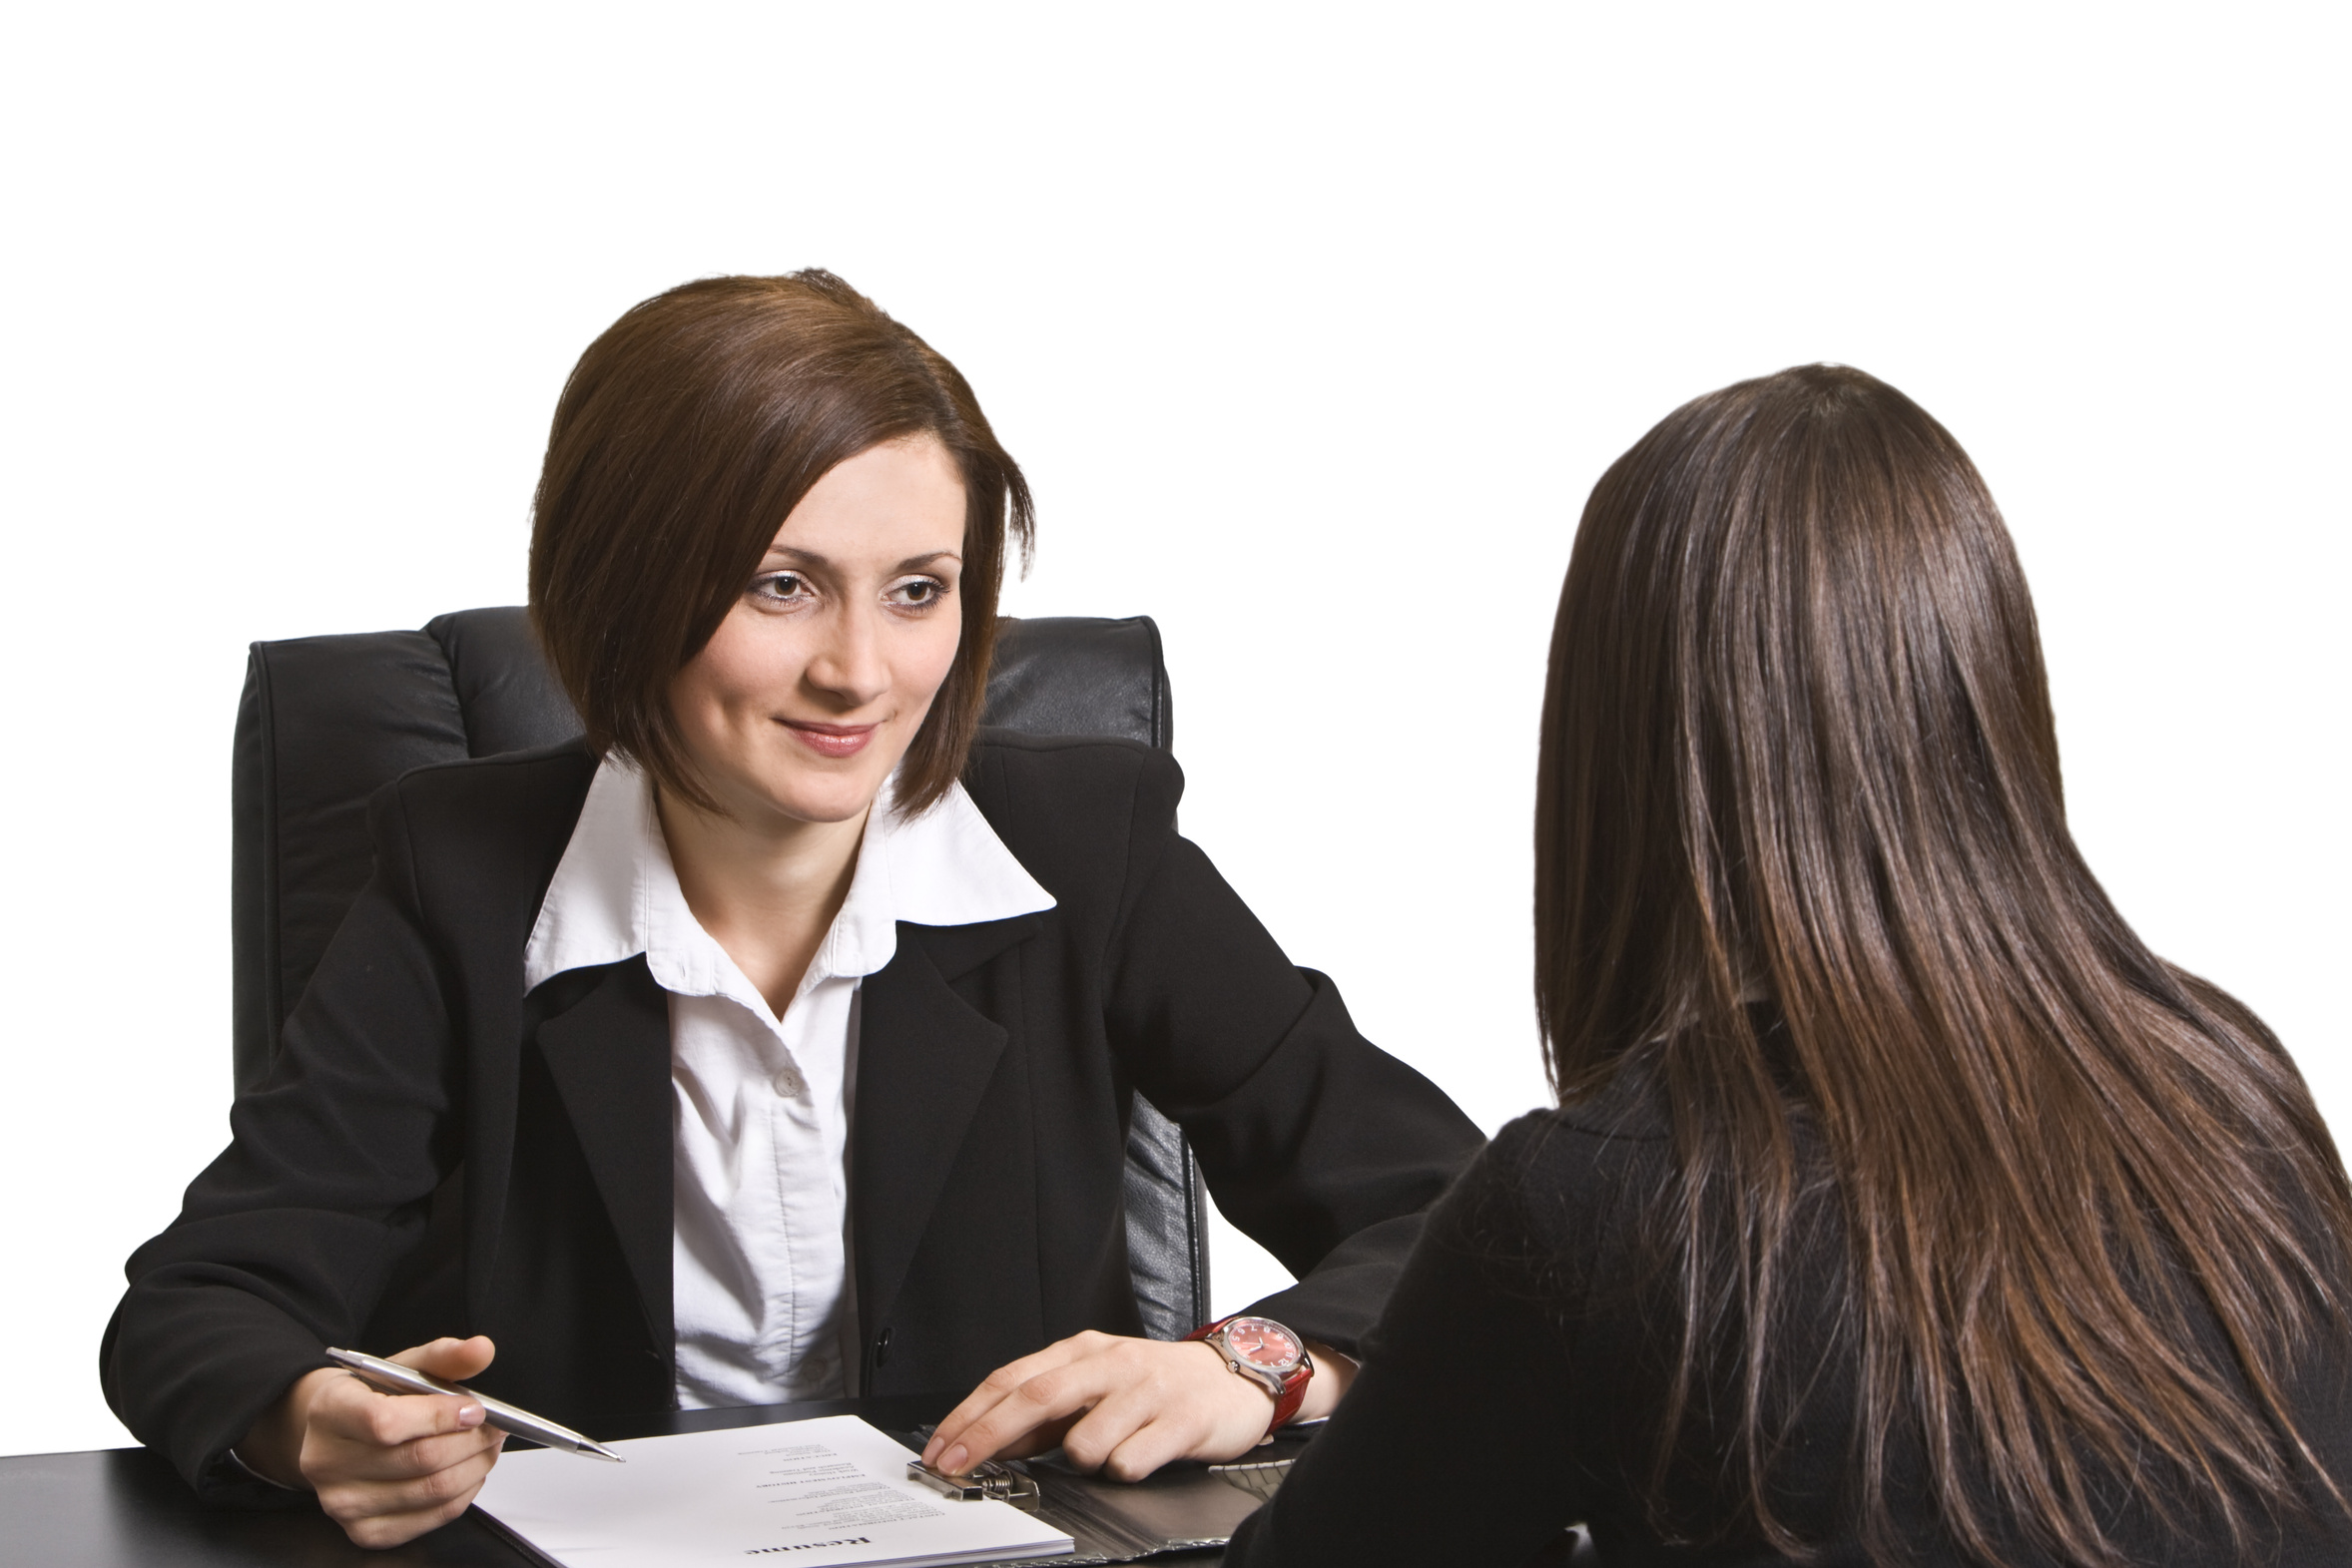 COMMON QUESTIONS YOU MAY BE ASKED IN INTERVIEW